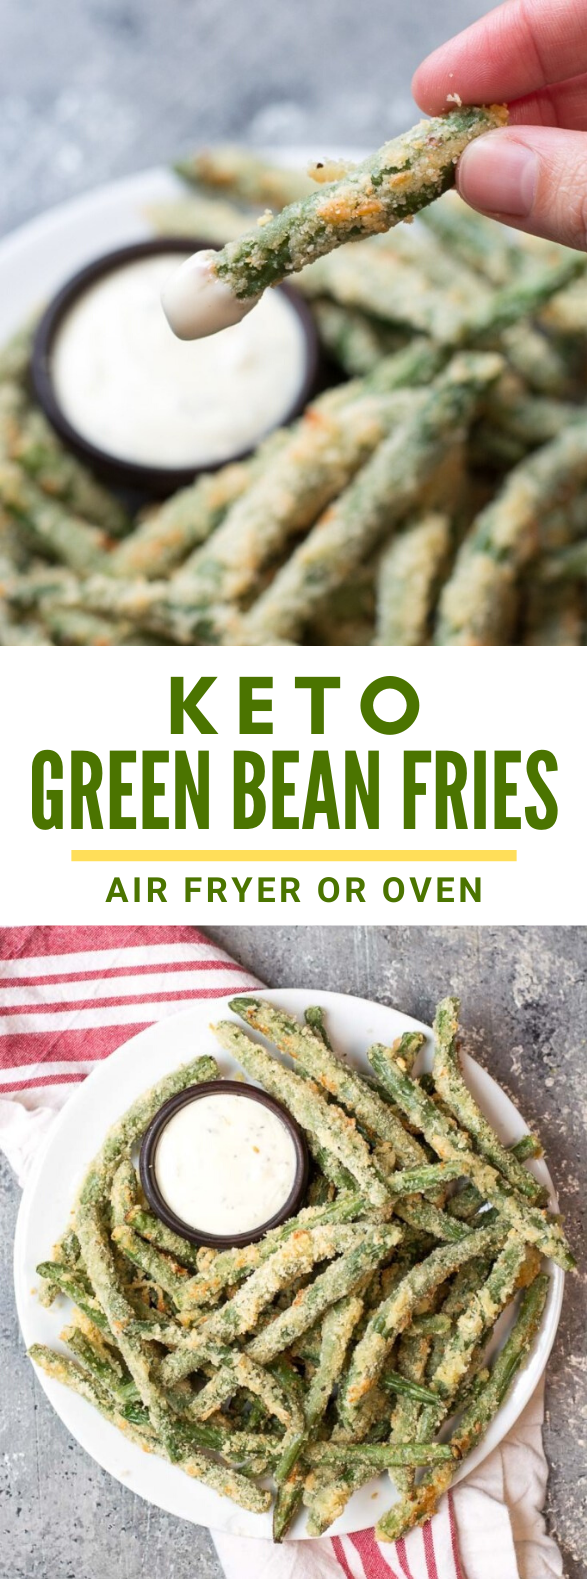 CRISPY GREEN BEAN FRIES (LOW CARB + AIR FRYER AND OVEN) #diet #gameday